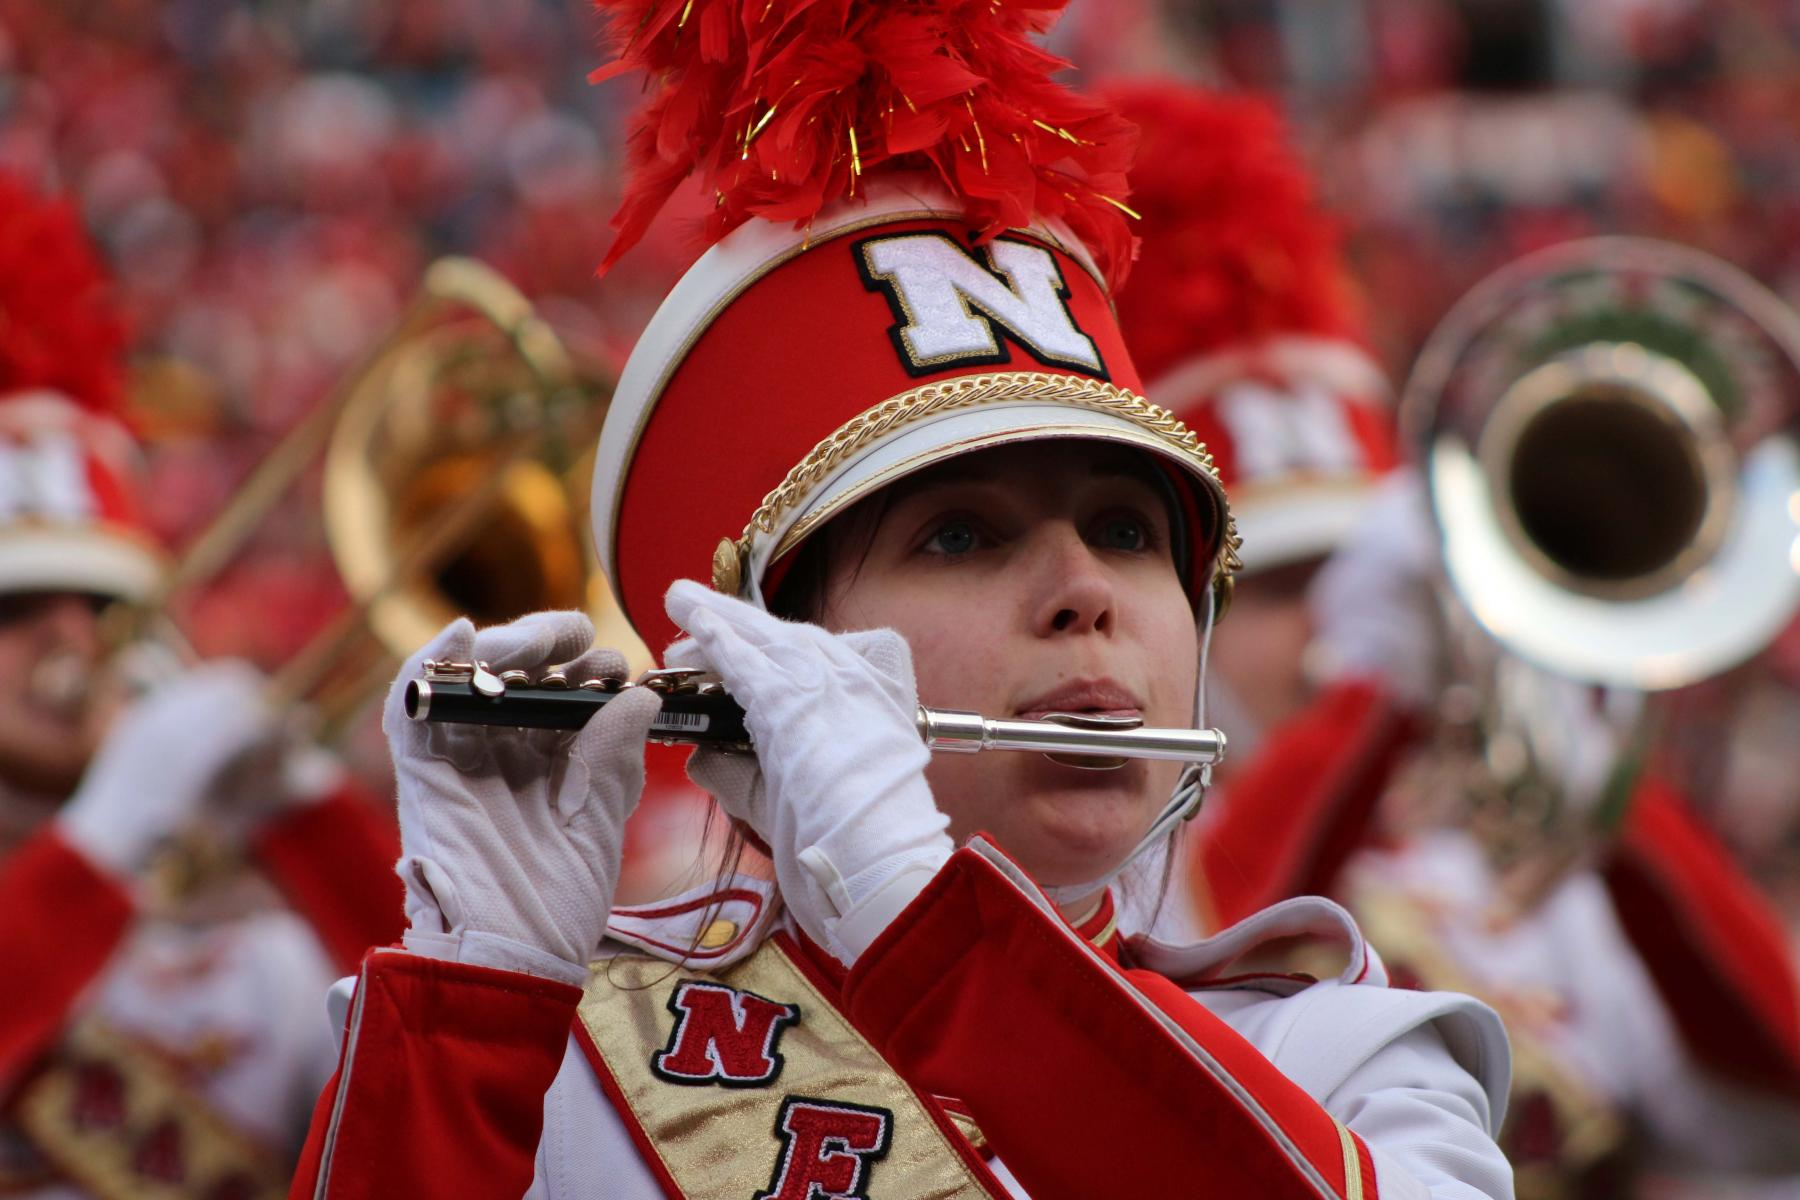 af916709a A Cornhusker Marching Band piccolo player.